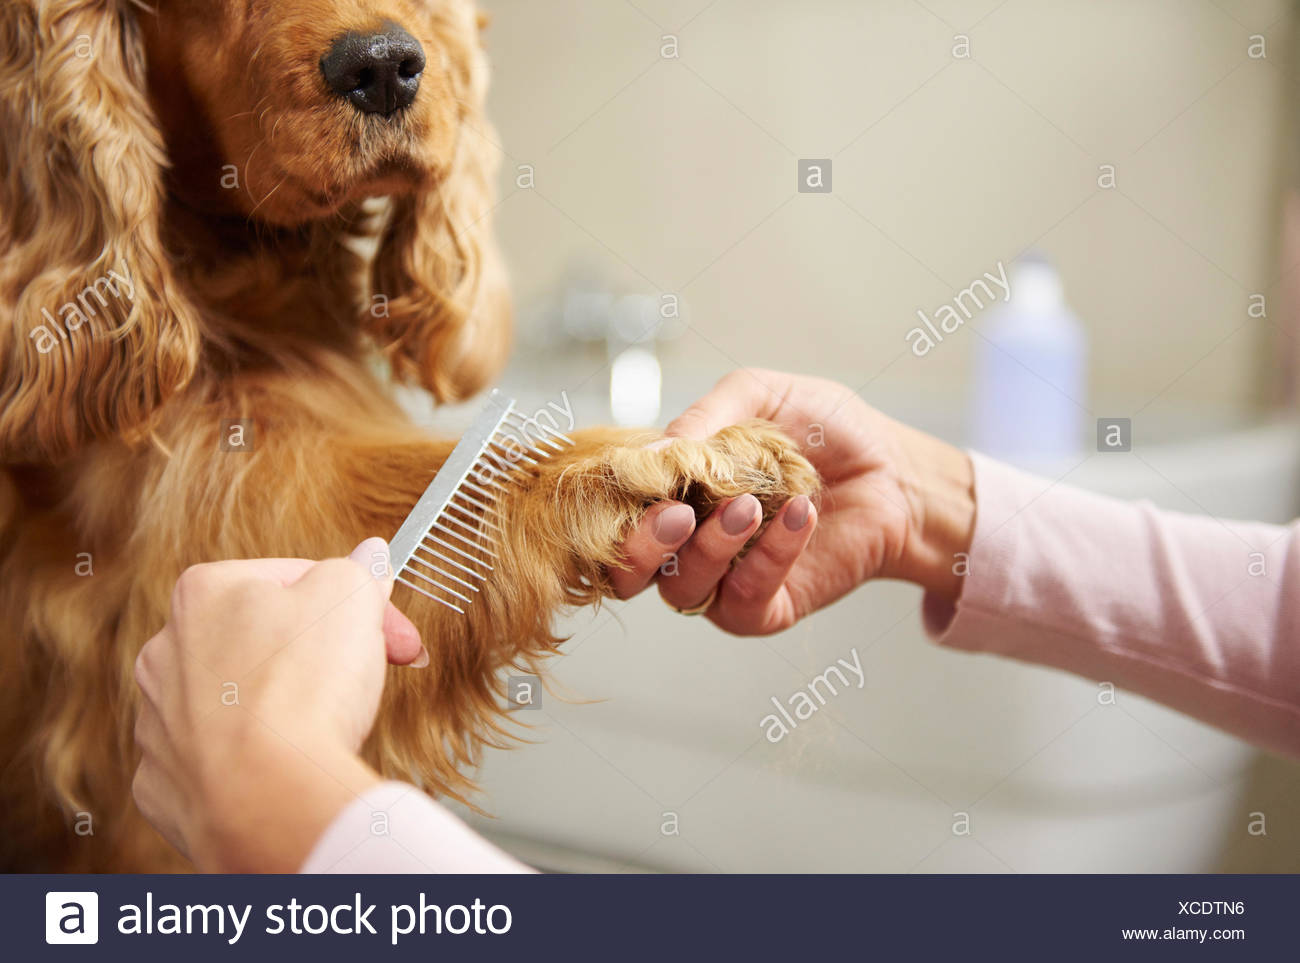 Hands of female groomer combing cocker spaniel's paw at dog grooming salon - Stock Image